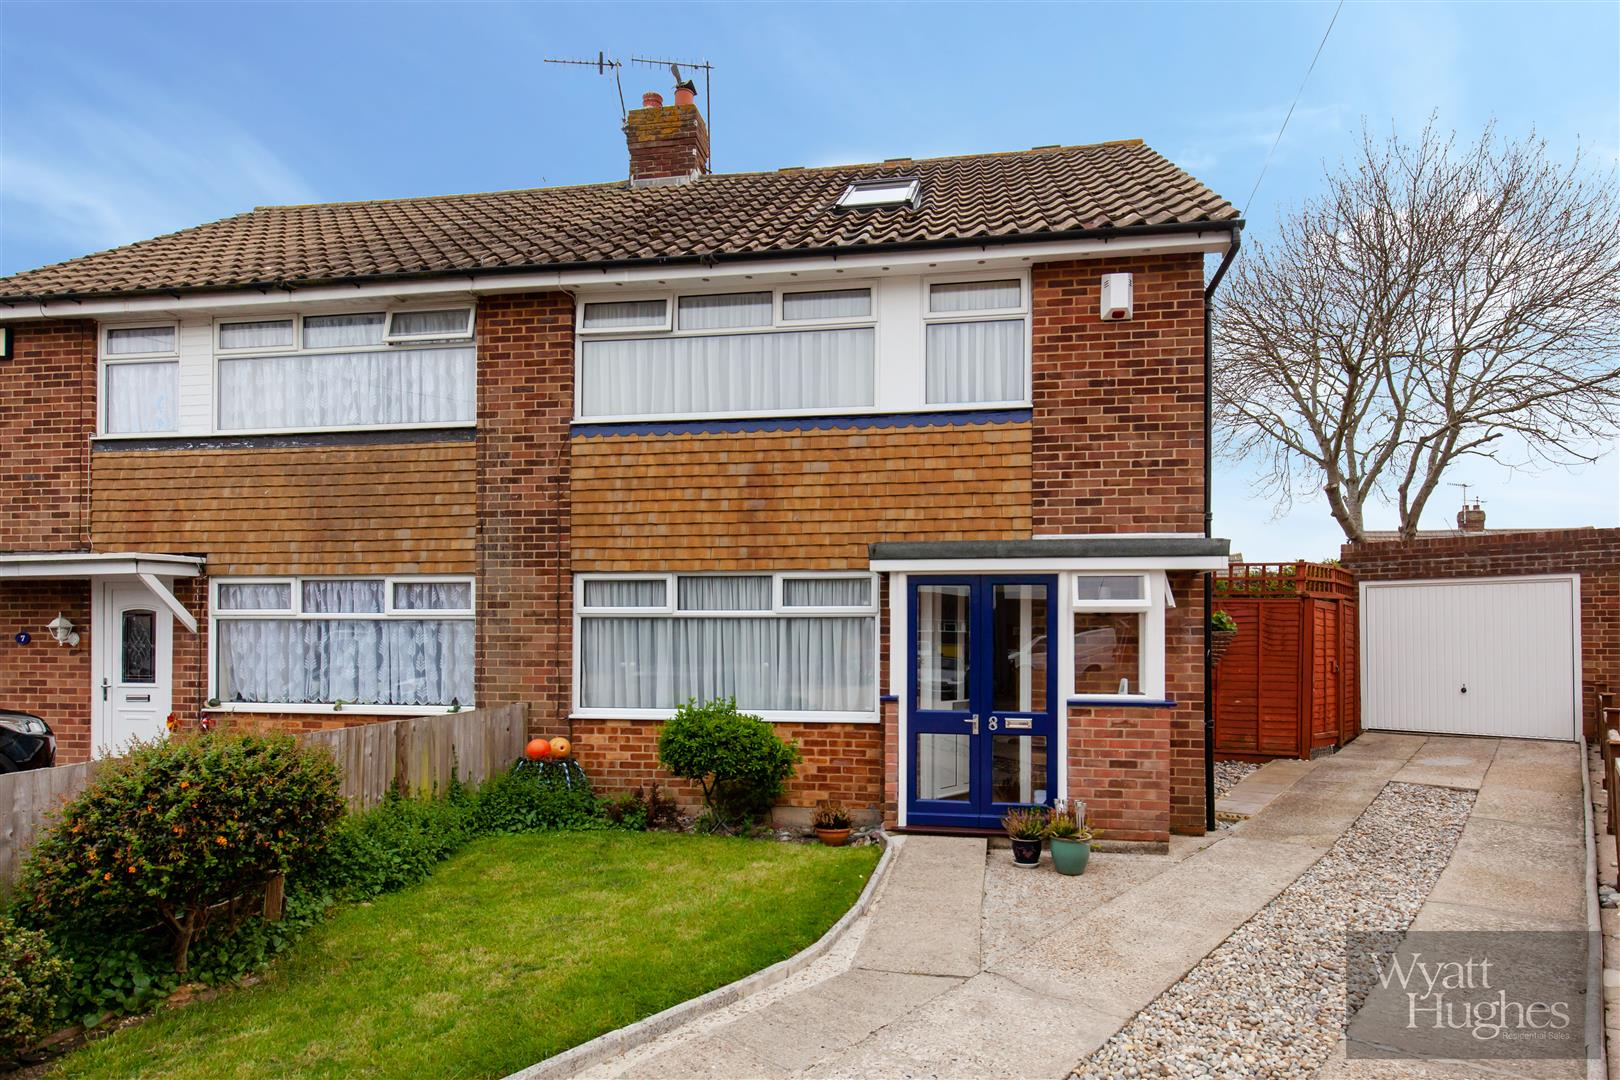 3 bed semi-detached house for sale in Angela Close, Bexhill-On-Sea, TN40